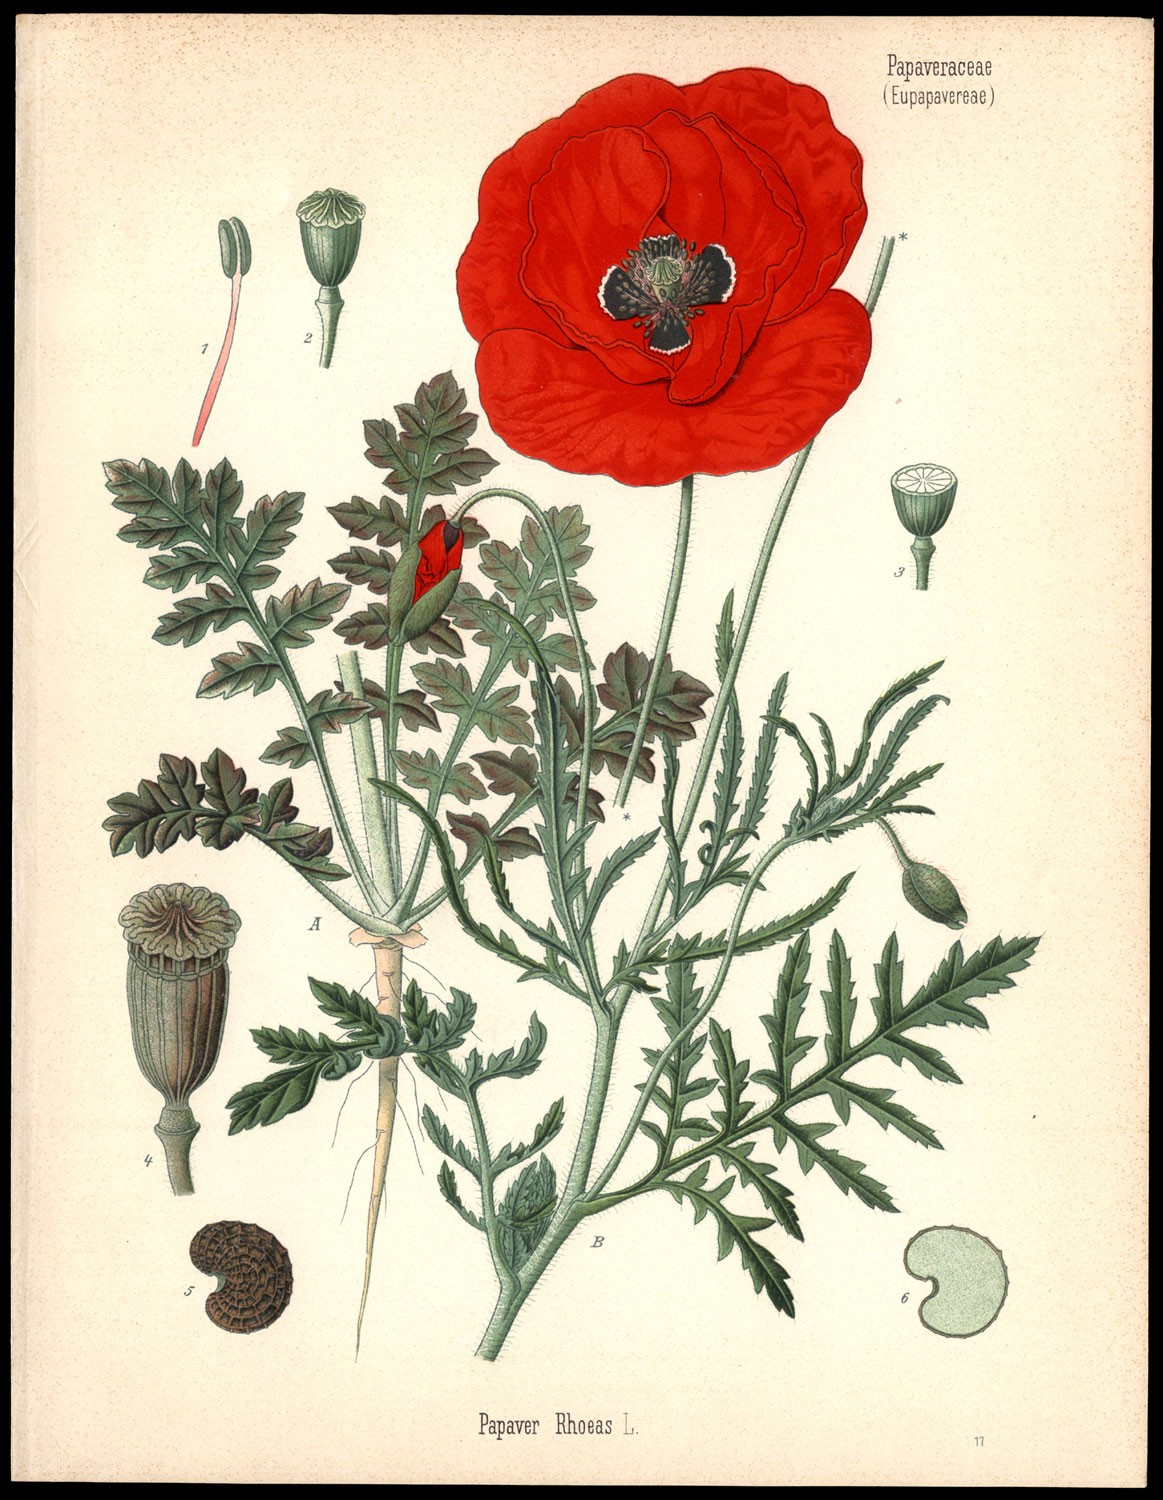 Drawn poppy scientific Poppy 1887 Herman Red Kohler